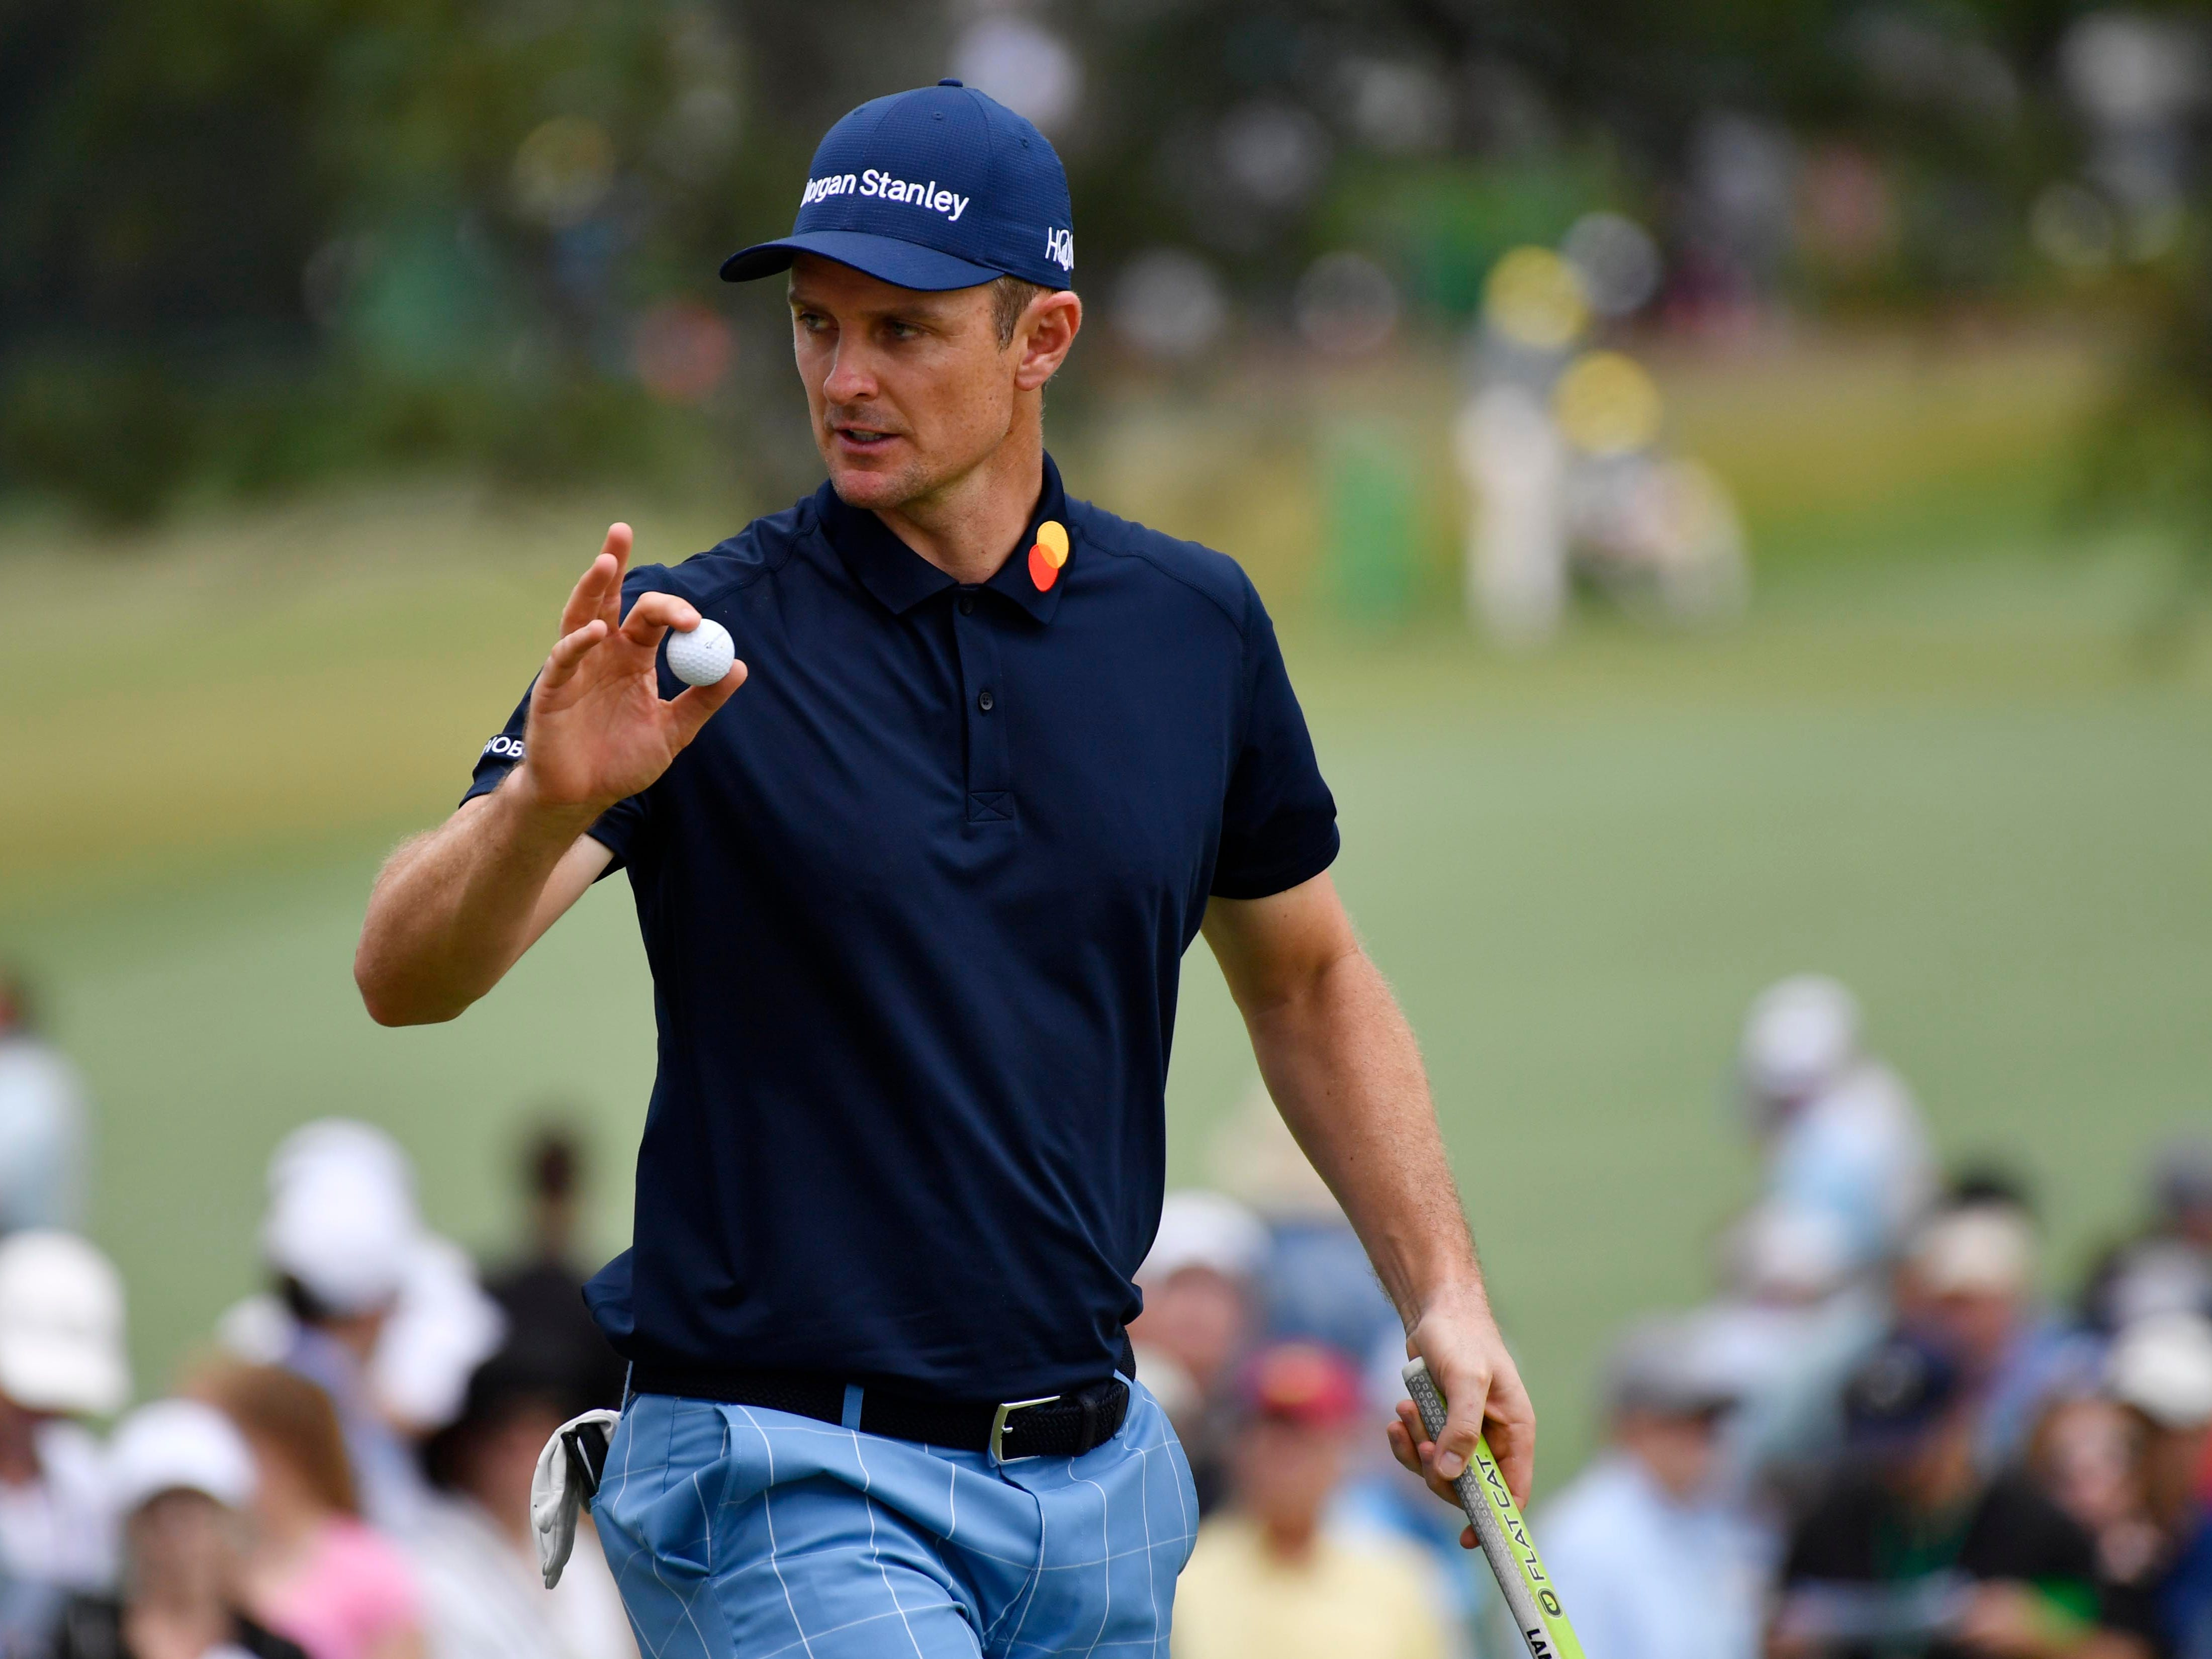 masters  justin rose on the wrong side of the cut line